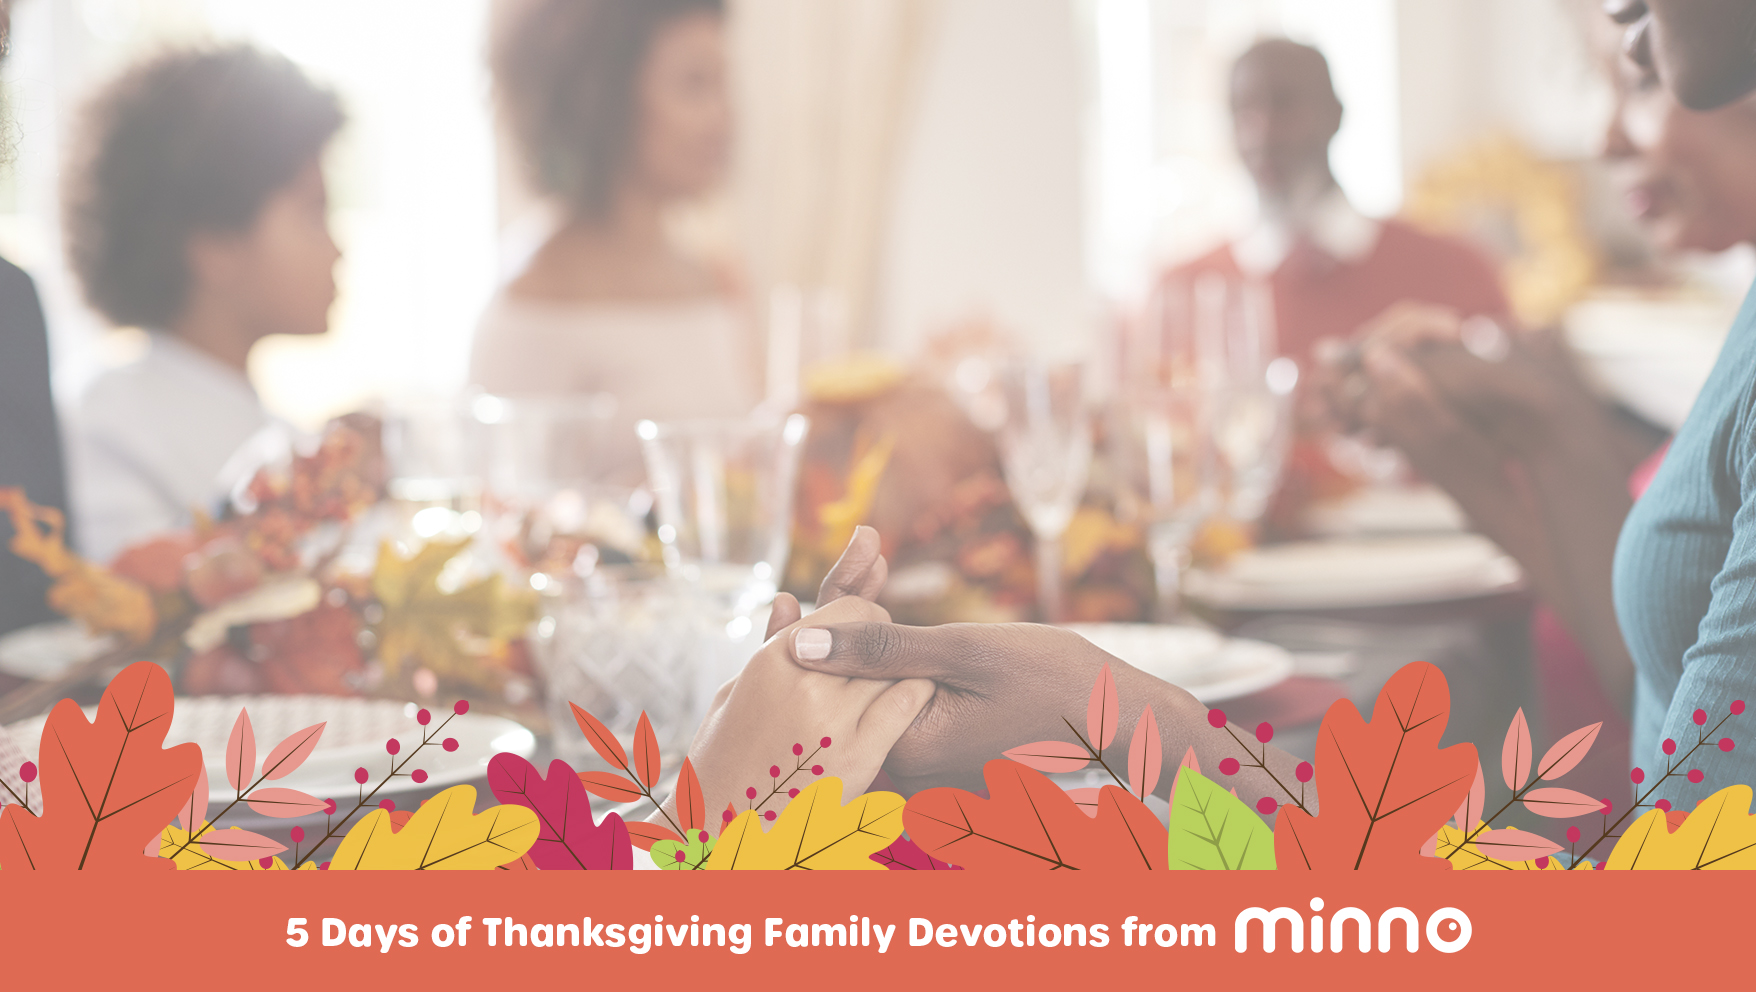 5 Days of Thanksgiving Family Devotions